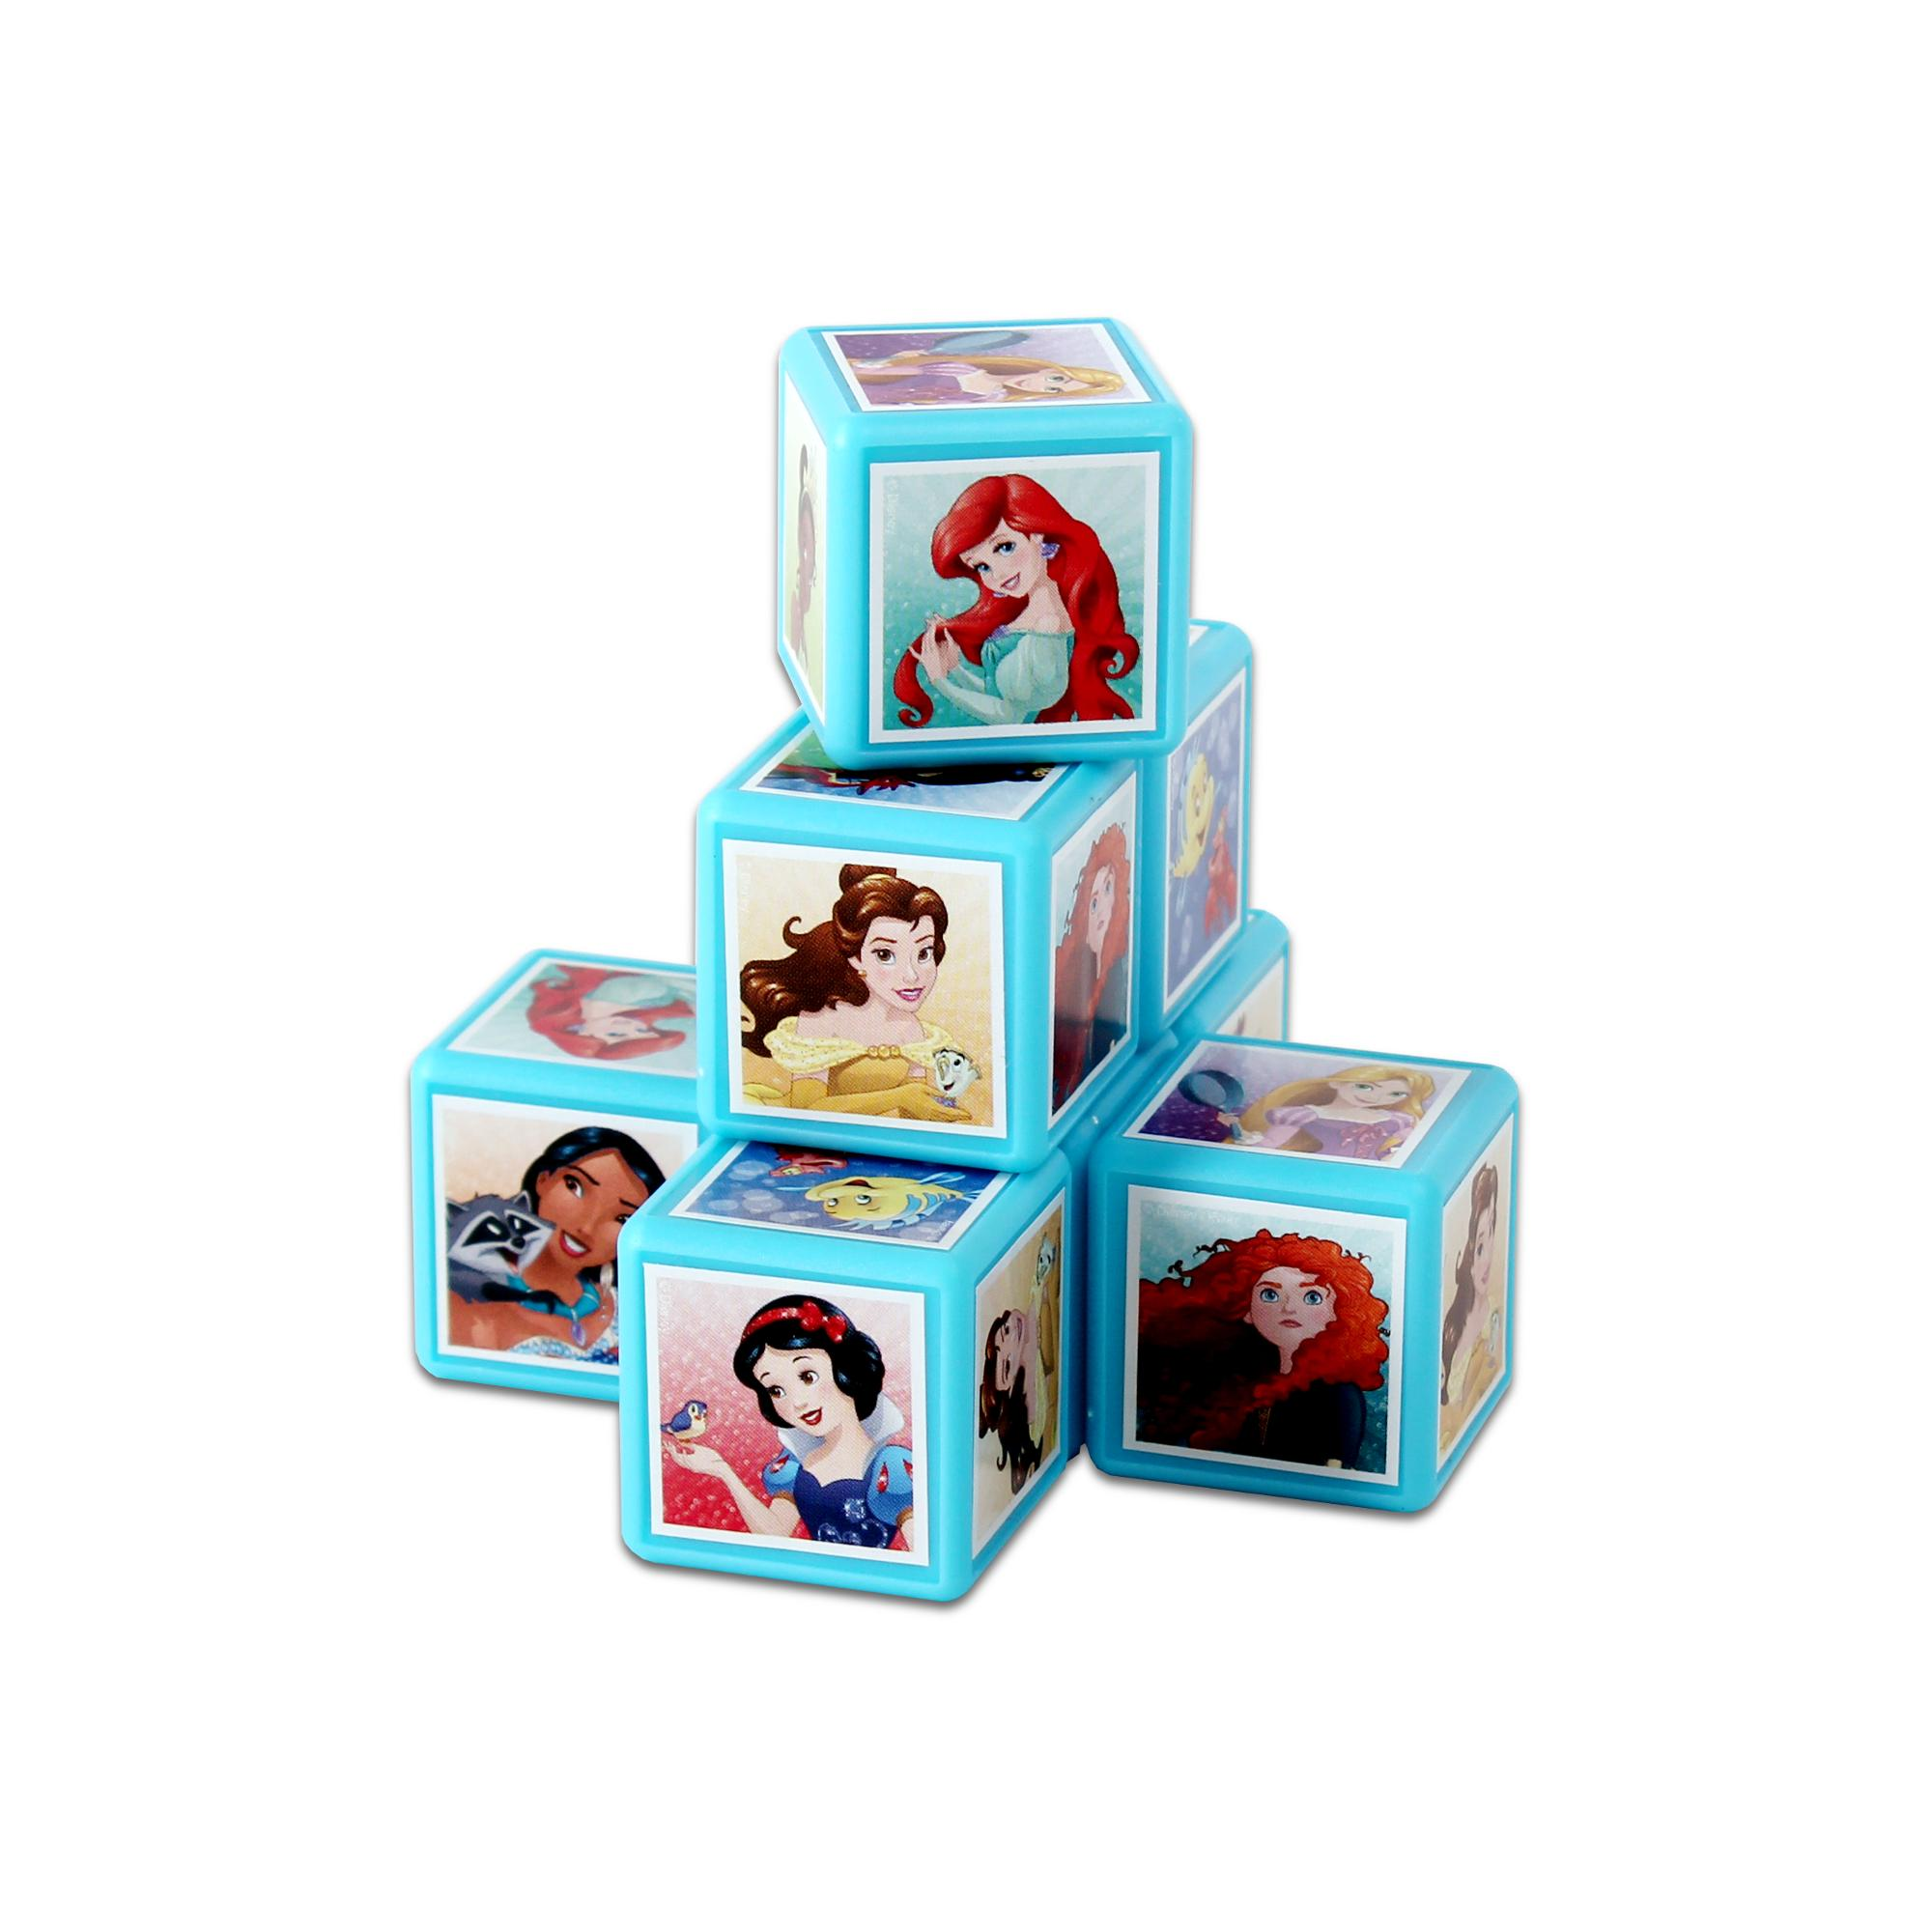 Best Disney Toys And Games For Kids : Disney princess top trumps match board game amazon